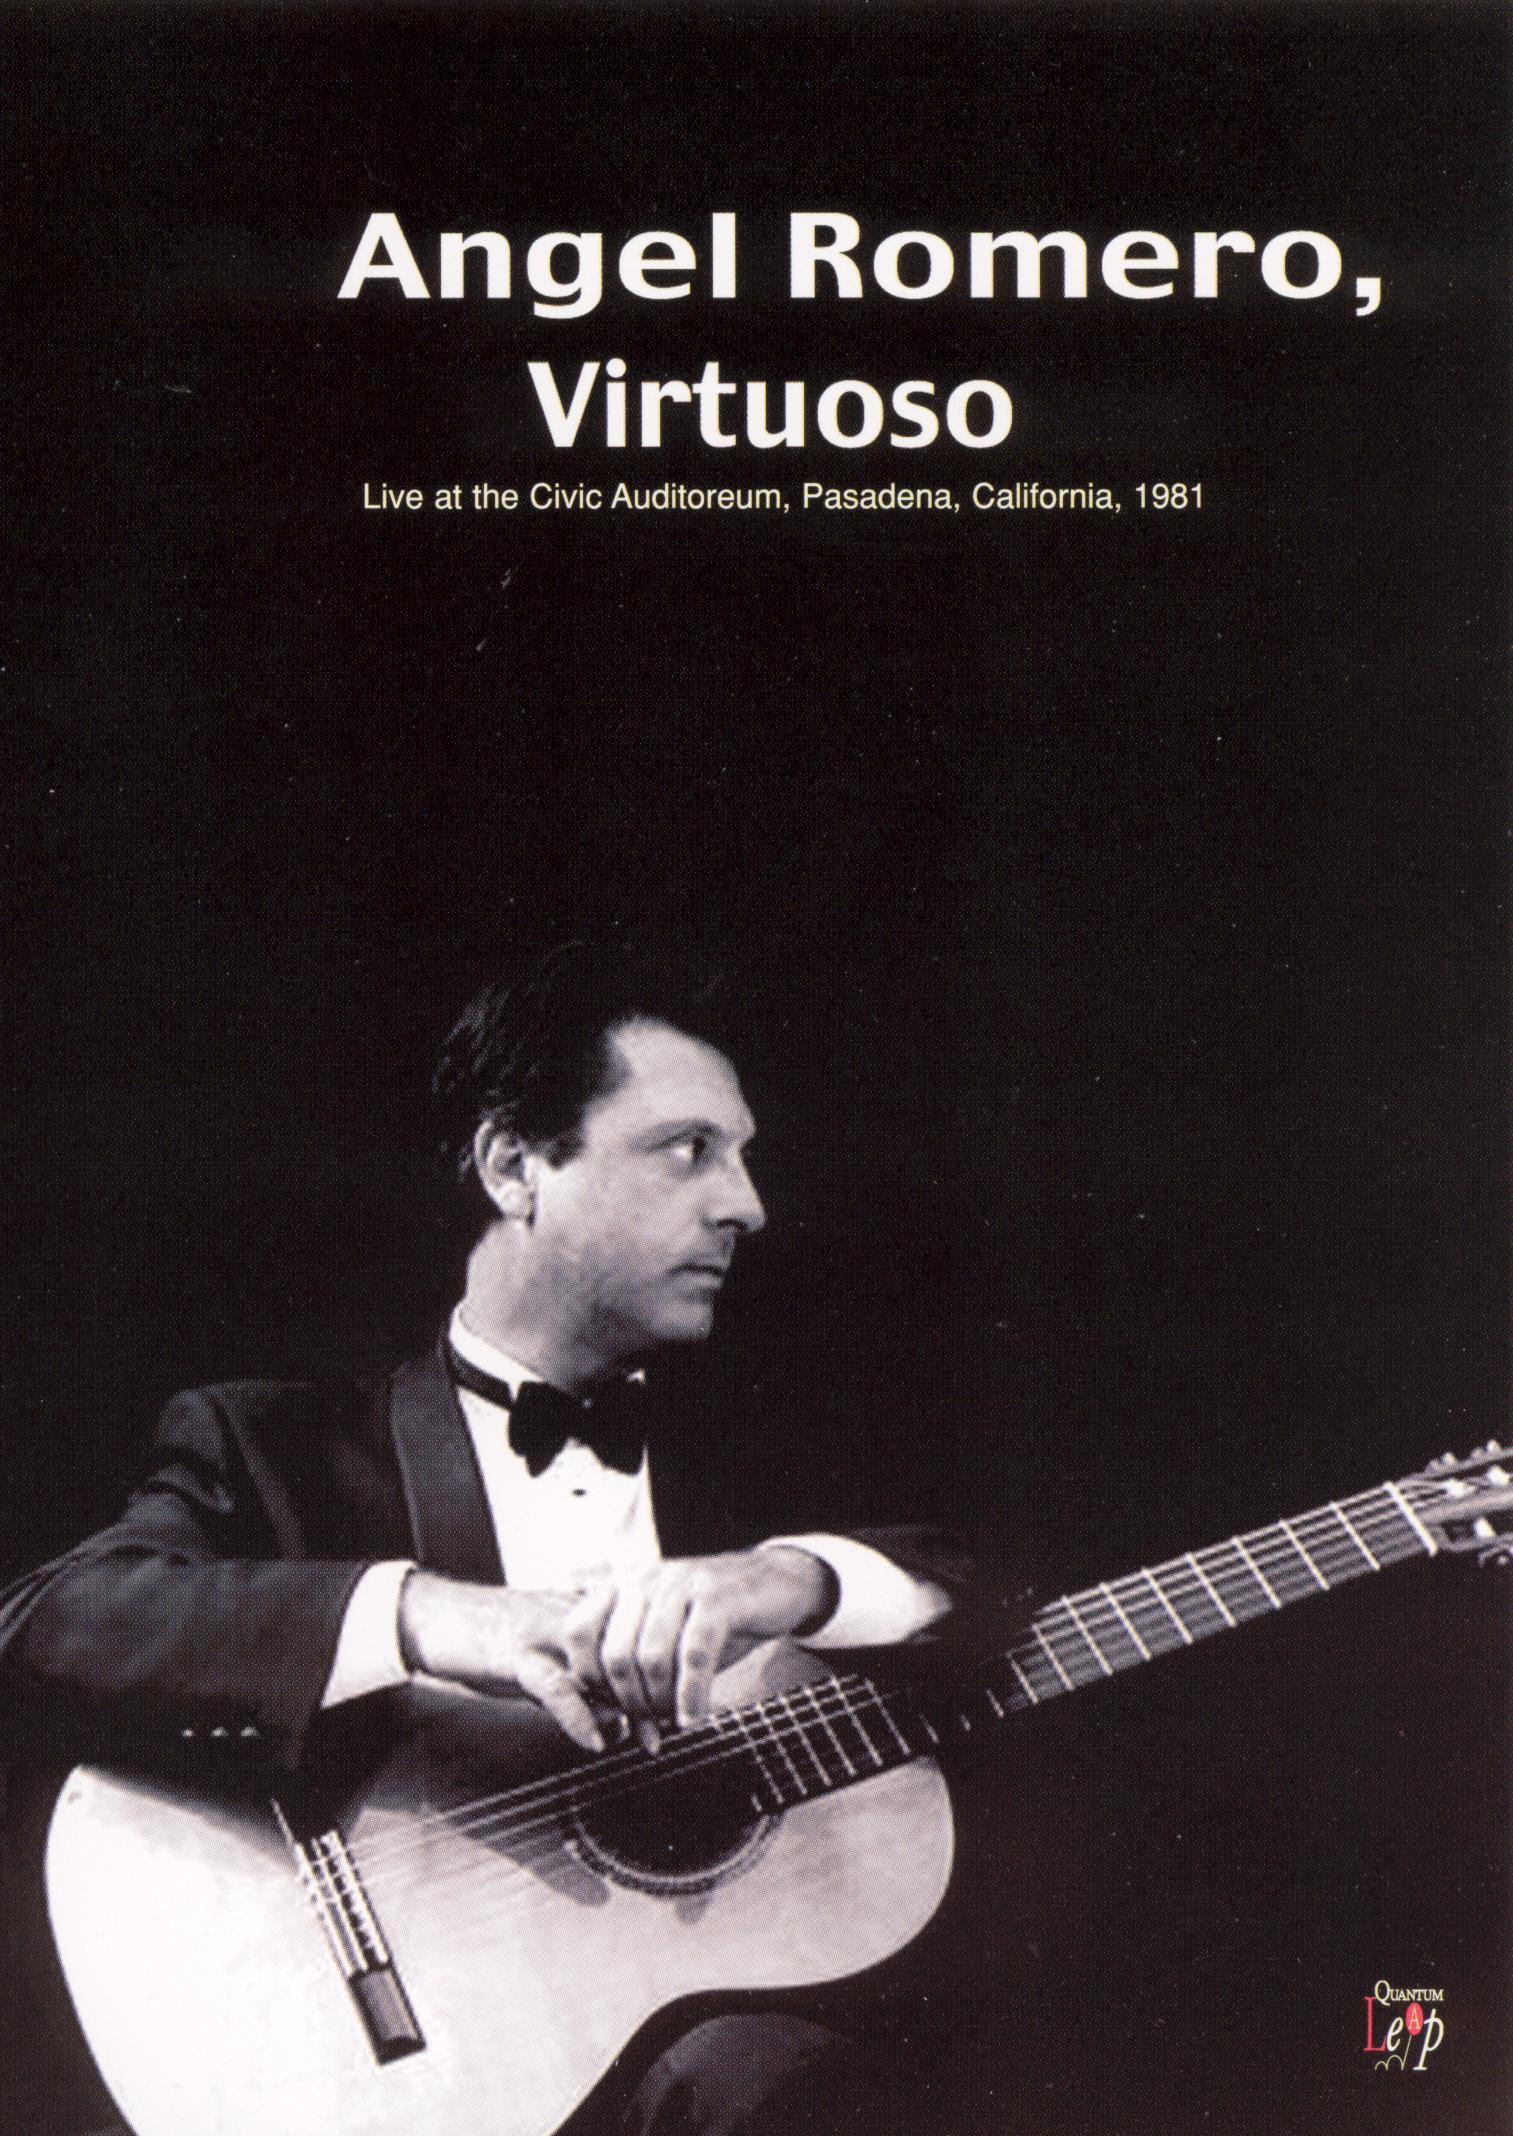 Angel Romero: Virtuoso